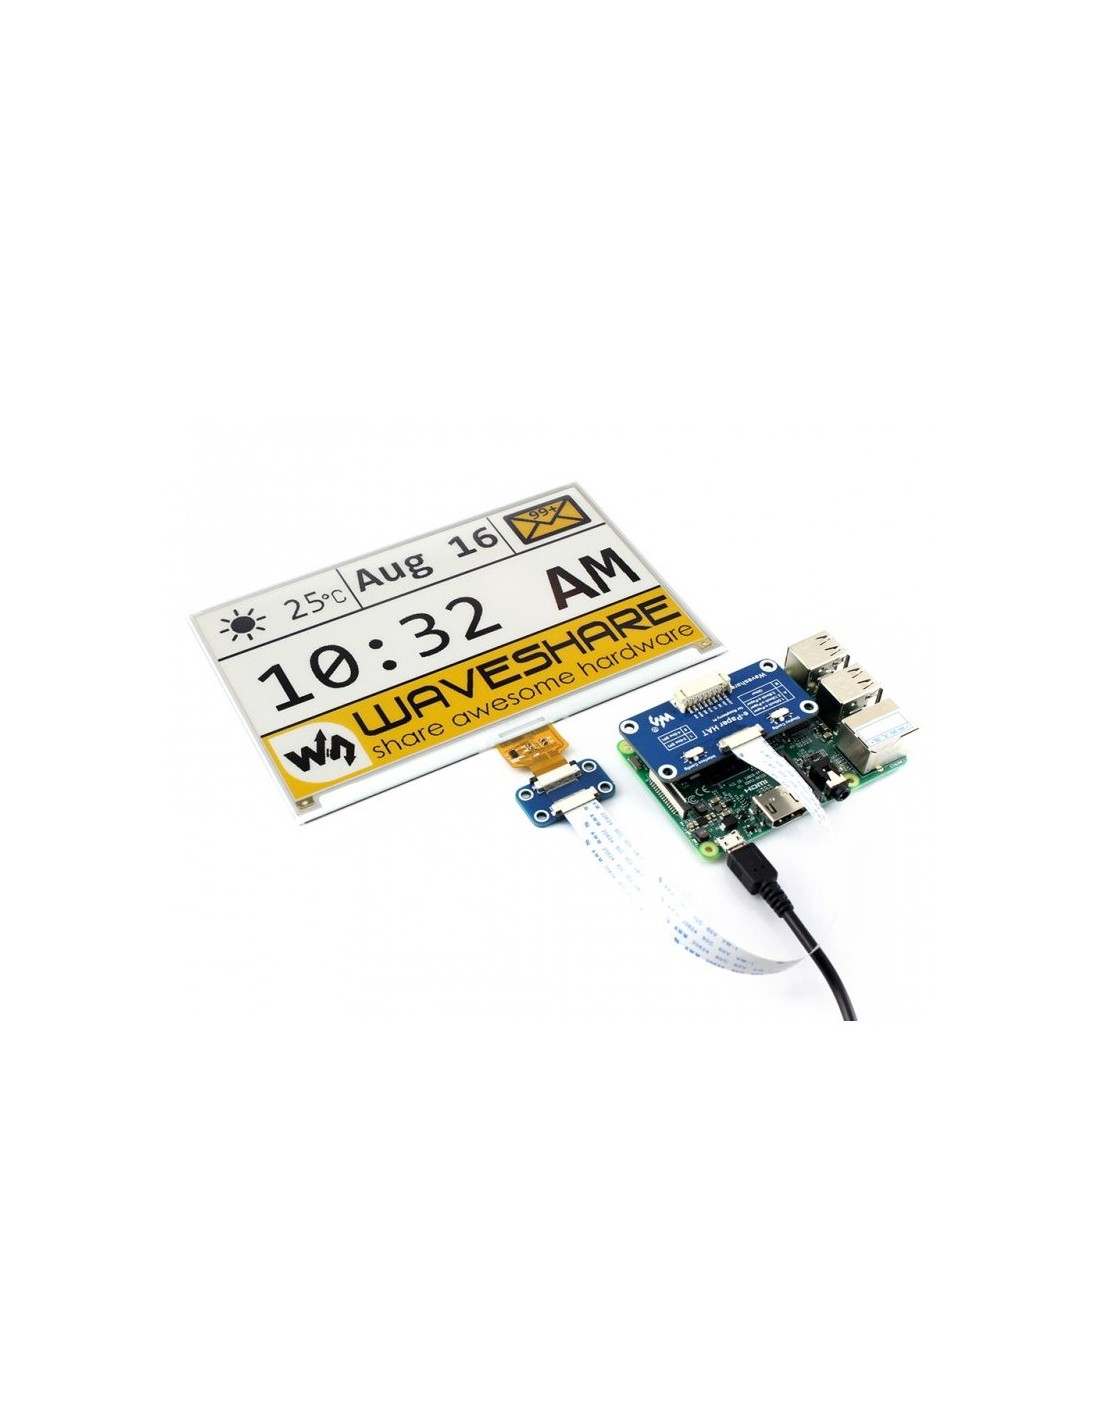 640x384, 7 5inch E-Ink display HAT for Raspberry Pi,  yellow/black/white,e-paper